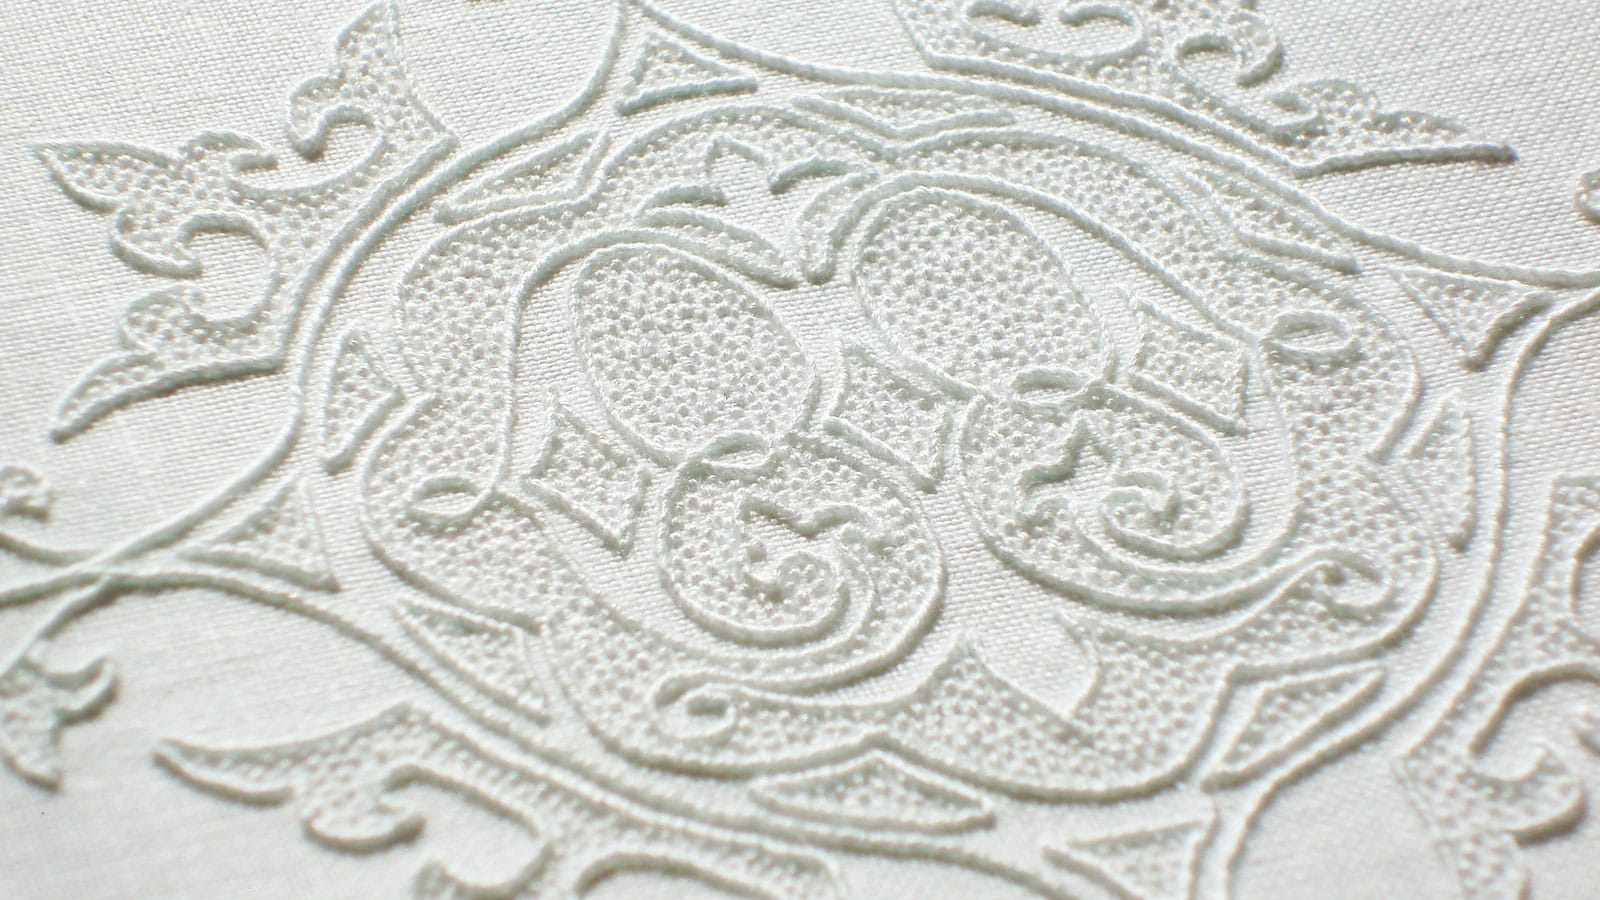 Christmas Hand Embroidery Patterns Needlenthread Tips Tricks And Great Resources For Hand Embroidery